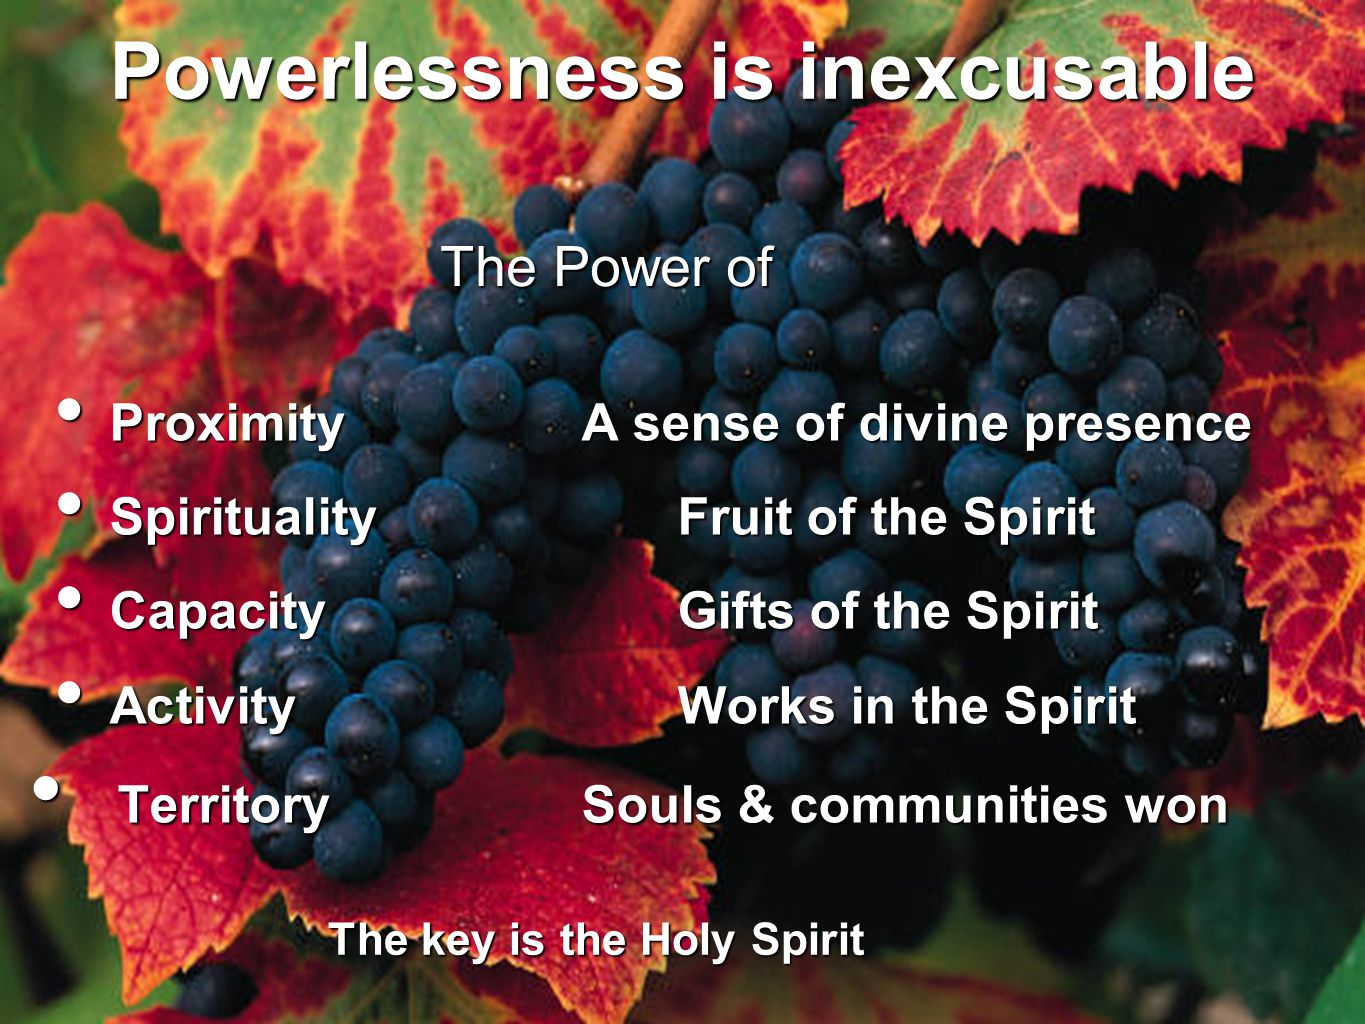 Powerlessness is inexcusable